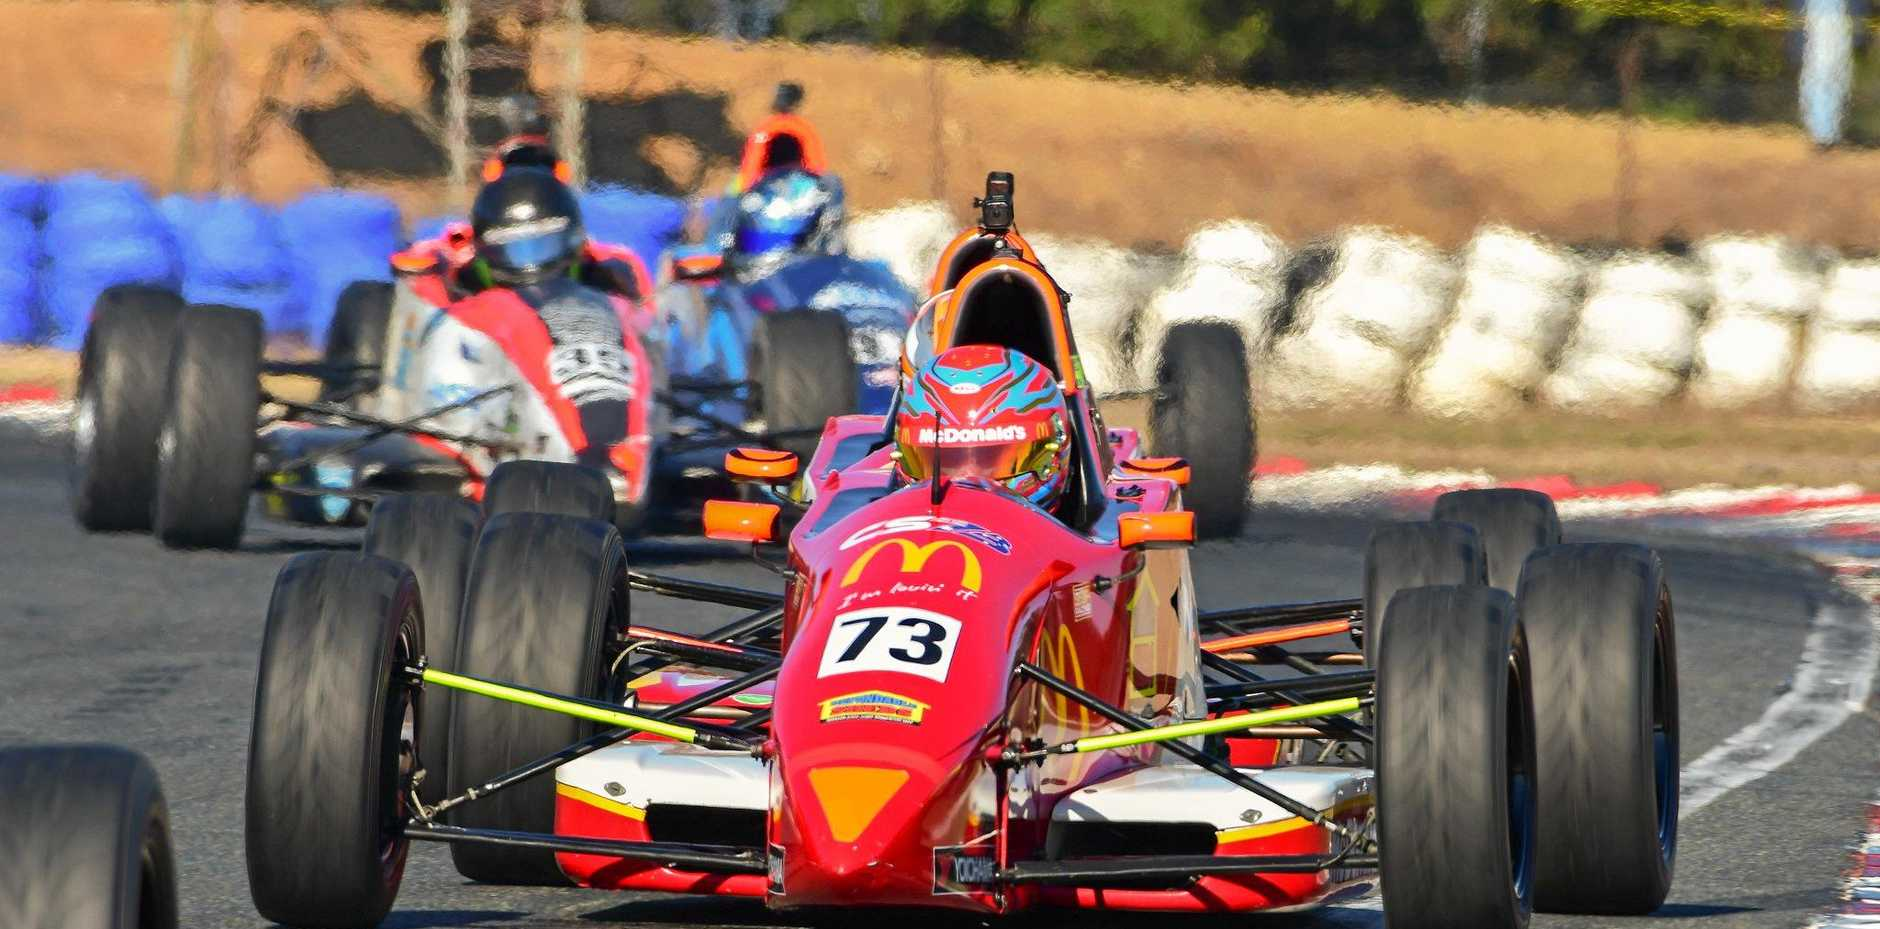 ON TRACK: Toowoomba's Cameron Shields battles through the pack during round three of the Formula Ford Championship at Wakefield Park Raceway, NSW.